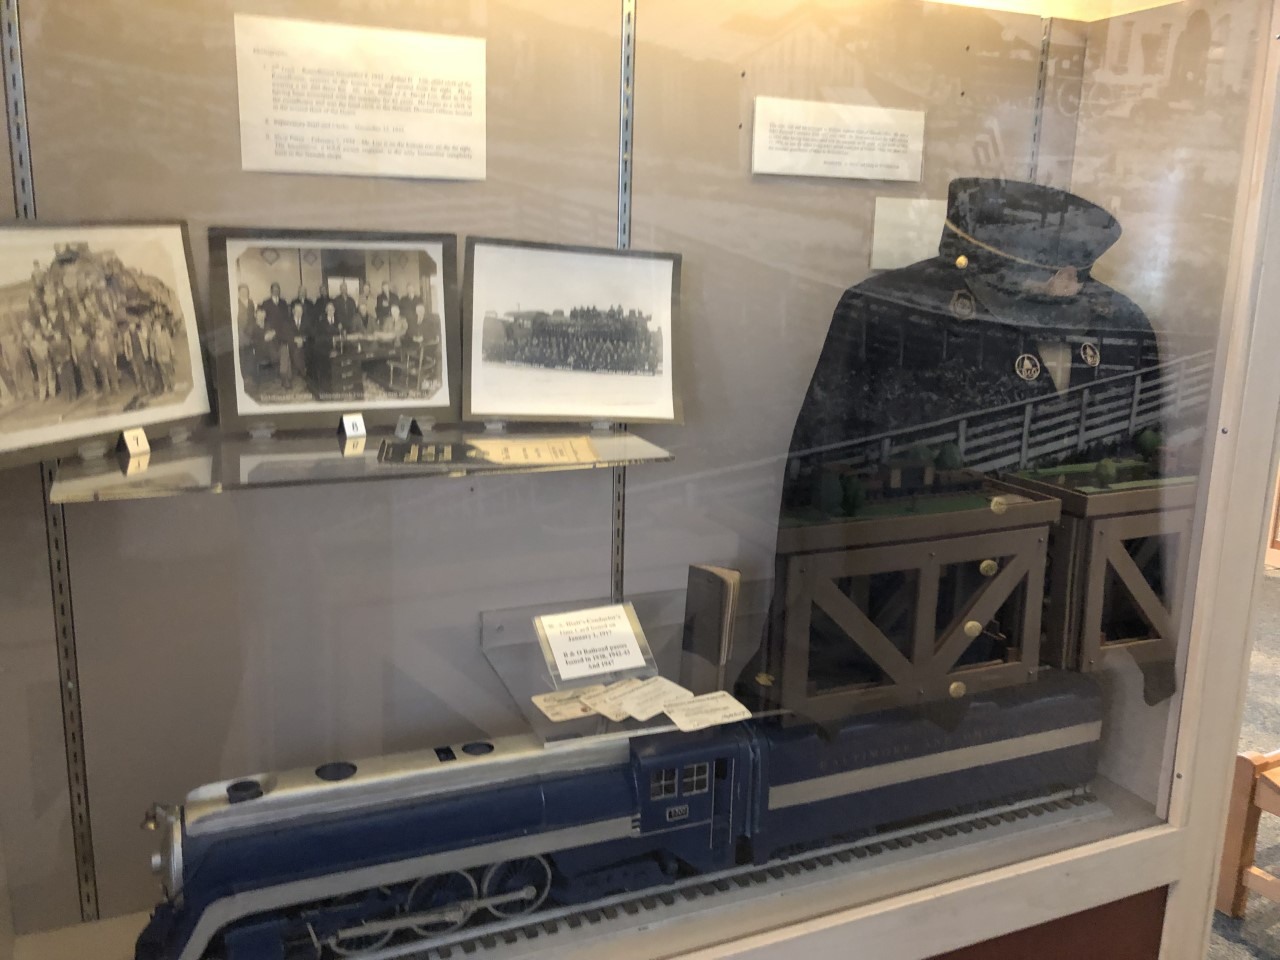 A variety of B&O memorabilia is on display, including photos, a model engine, and a uniform belonging to William Andrew Hiatt, B&O conductor from 1917 to 1942.